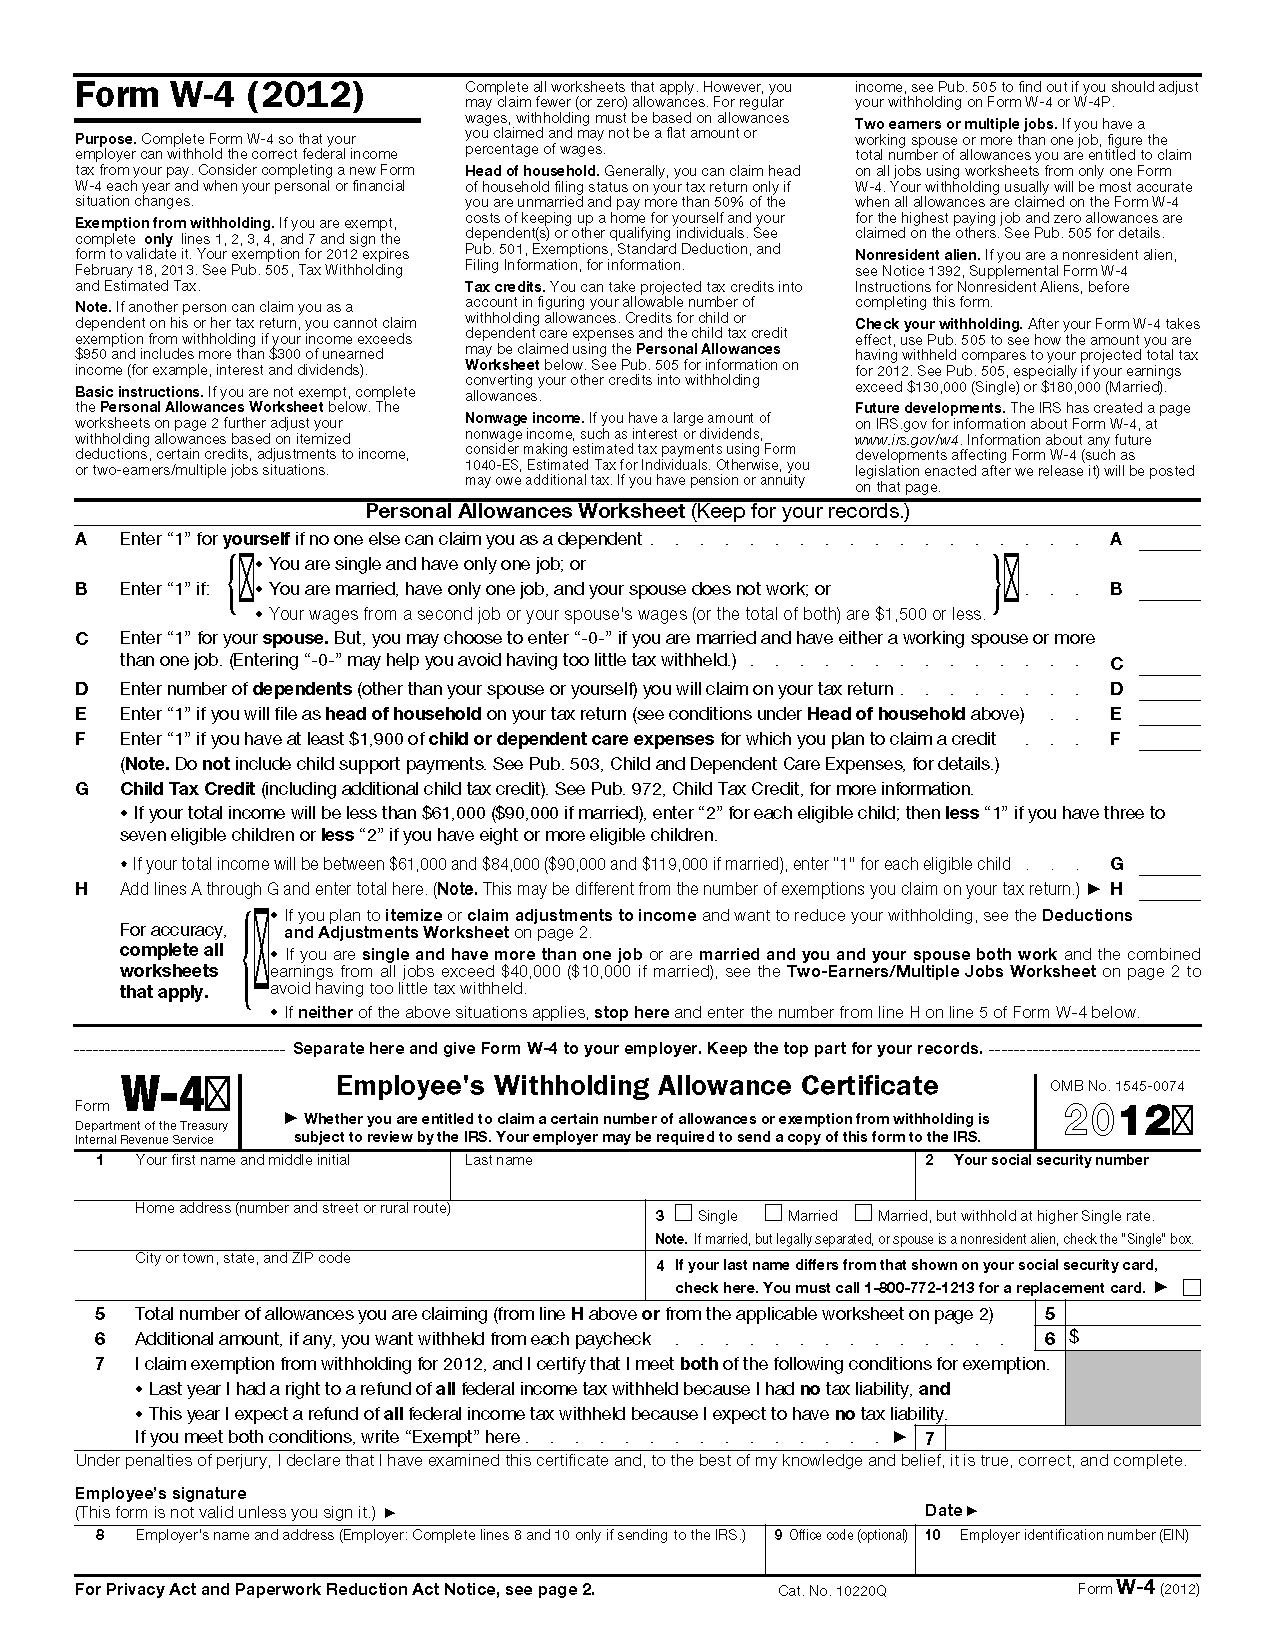 Form W4 Employees Withholding Allowance Certificate – Personal Allowances Worksheet